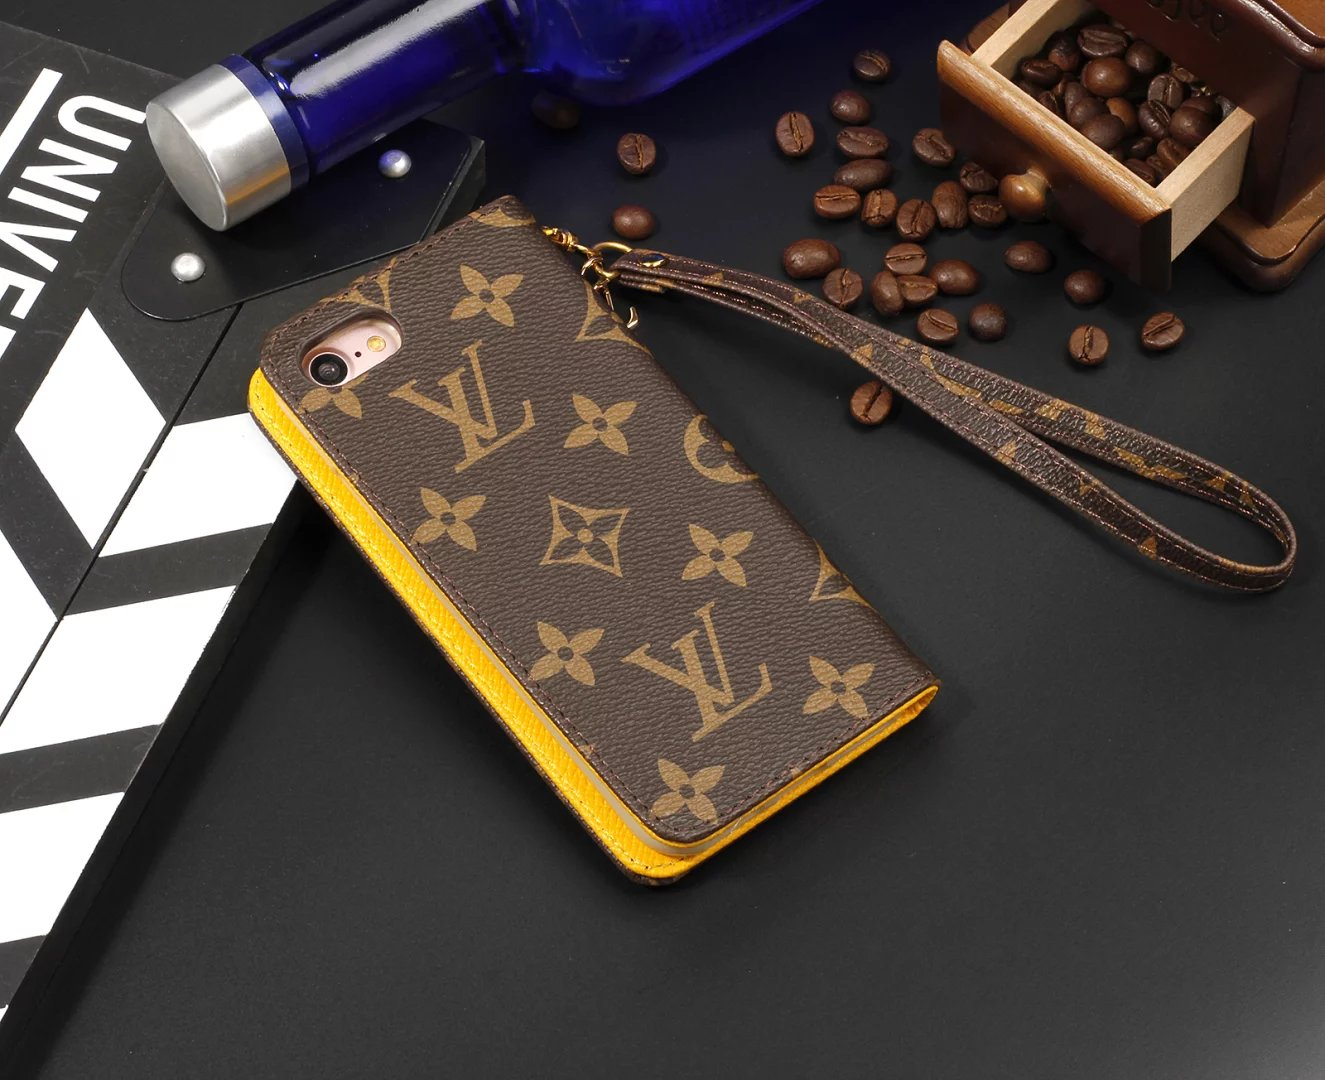 iphone 8 case official iphone 8 leather case designer Louis Vuitton iphone 8 case iphone 8 leather cover iphone 8 cases leather designer cases design cell phone case juice iphone apple iphone 8 cases